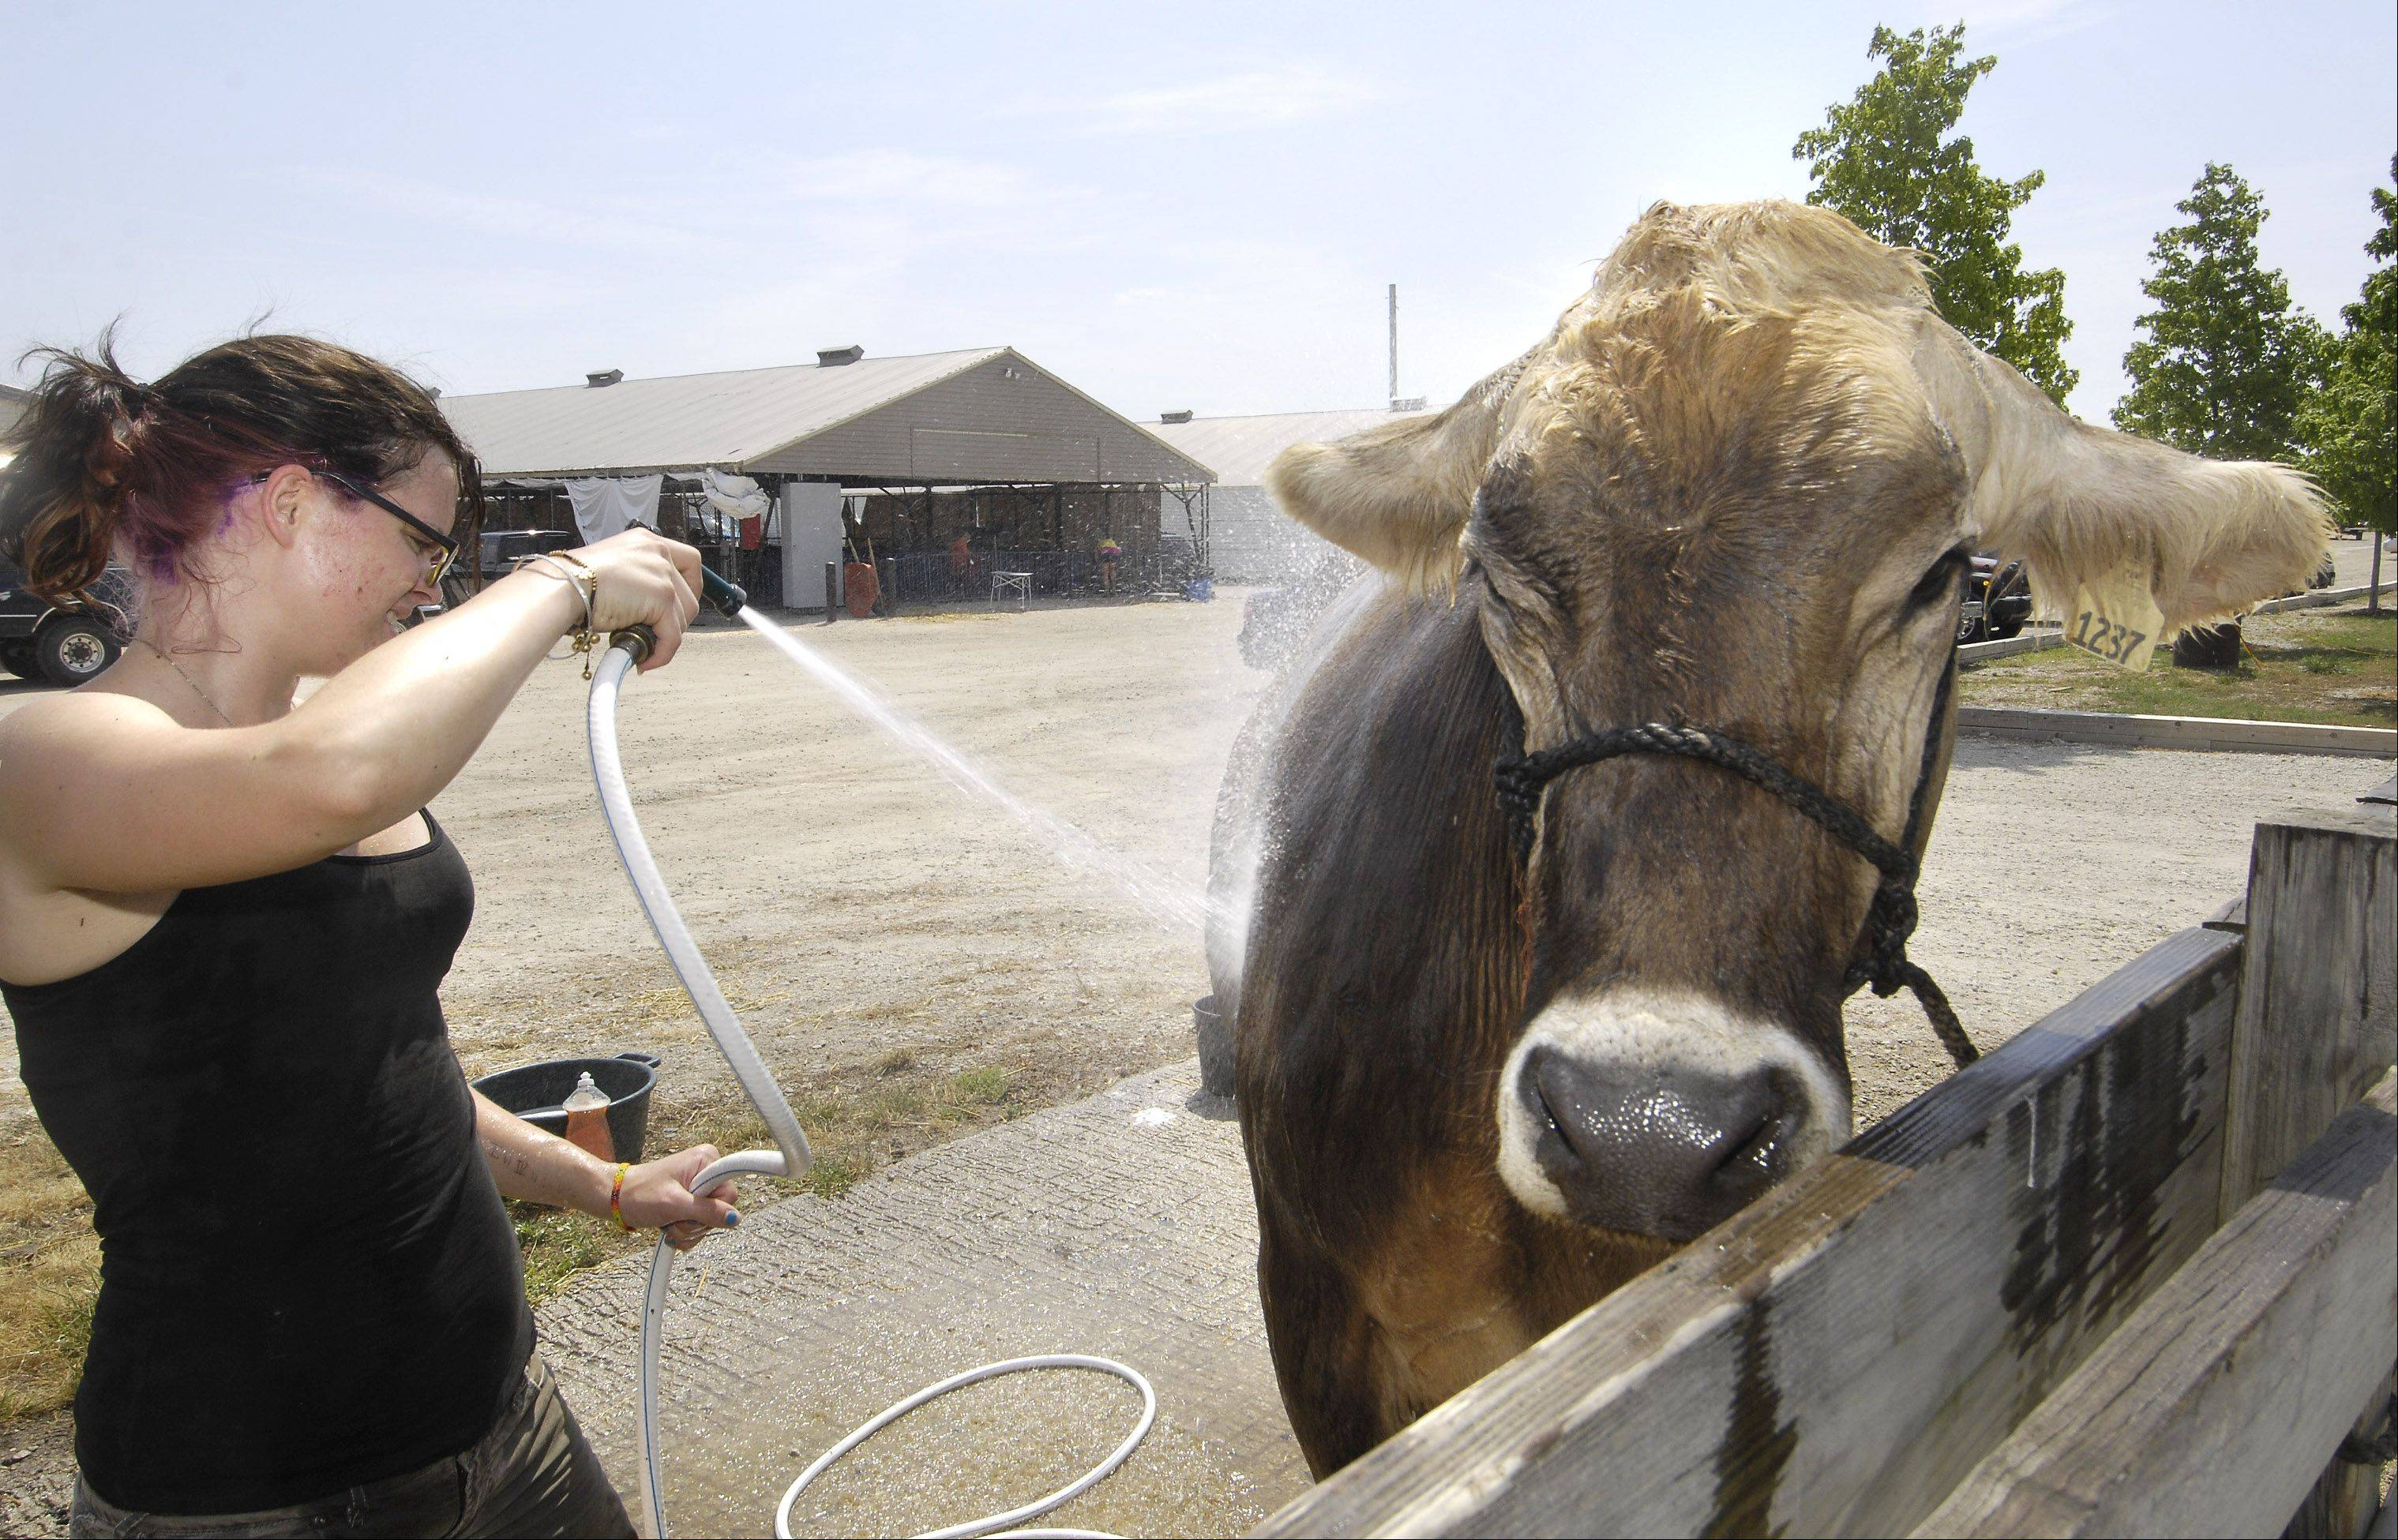 Frantic, an 1.800-pound swiss dairy cow turns her ears down as Grace Shanks, 20, of Garden Prairie, Wis., sprays her Tuesday in the heat at the Kane County Fair in St. Charles.